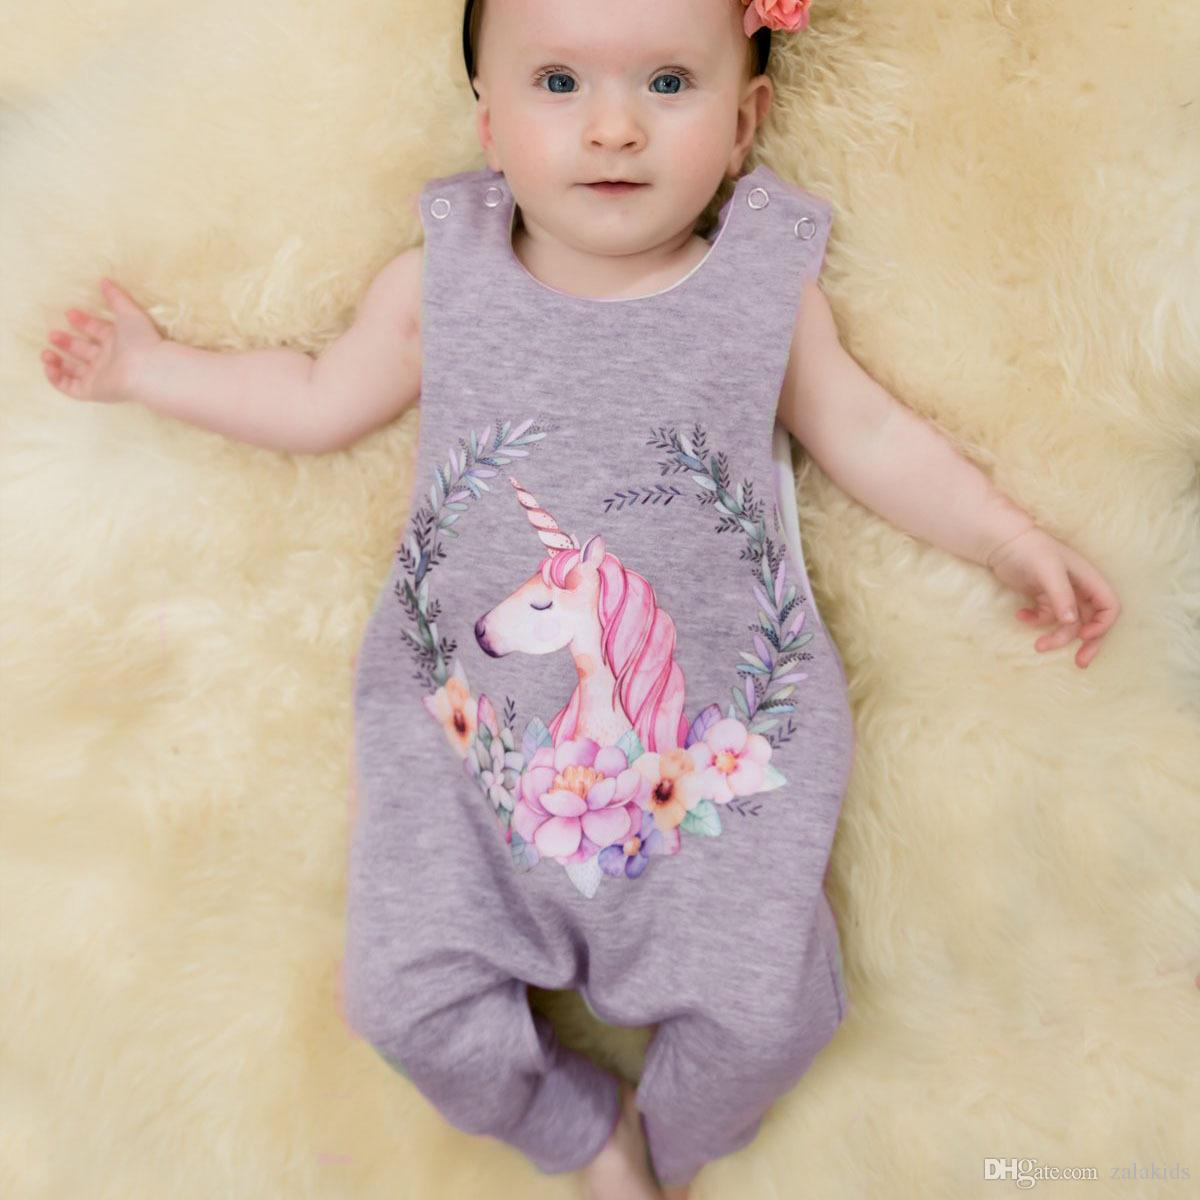 c6e006f6d706 2018 New Baby Girl Unicorn Rompers Summer Clothes Sleeveless ...